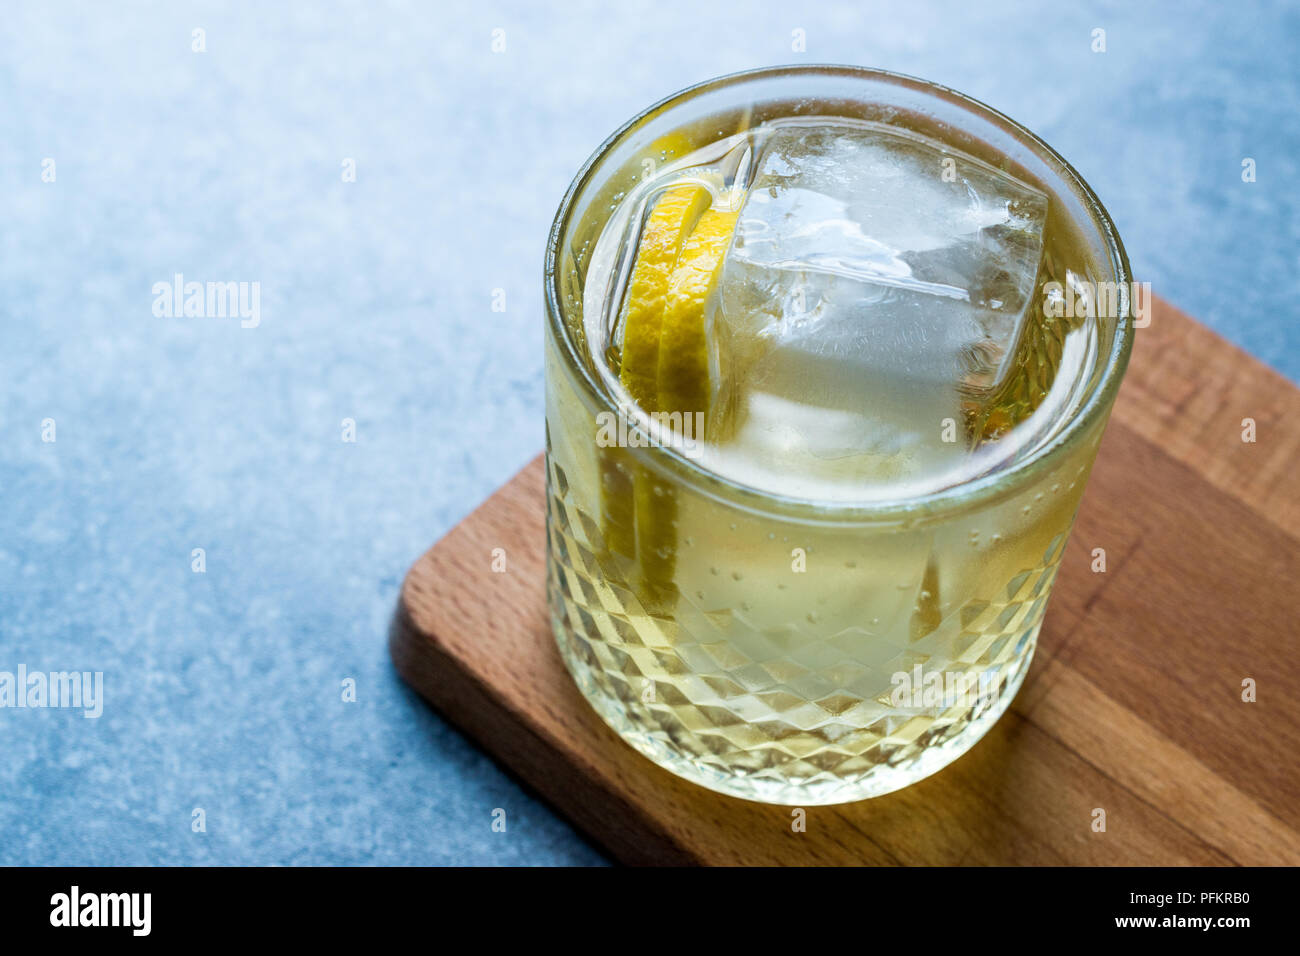 Irish Ale Cocktail with Ginger Beer, Lemon and Ice. Alcoholic Beverage. - Stock Image